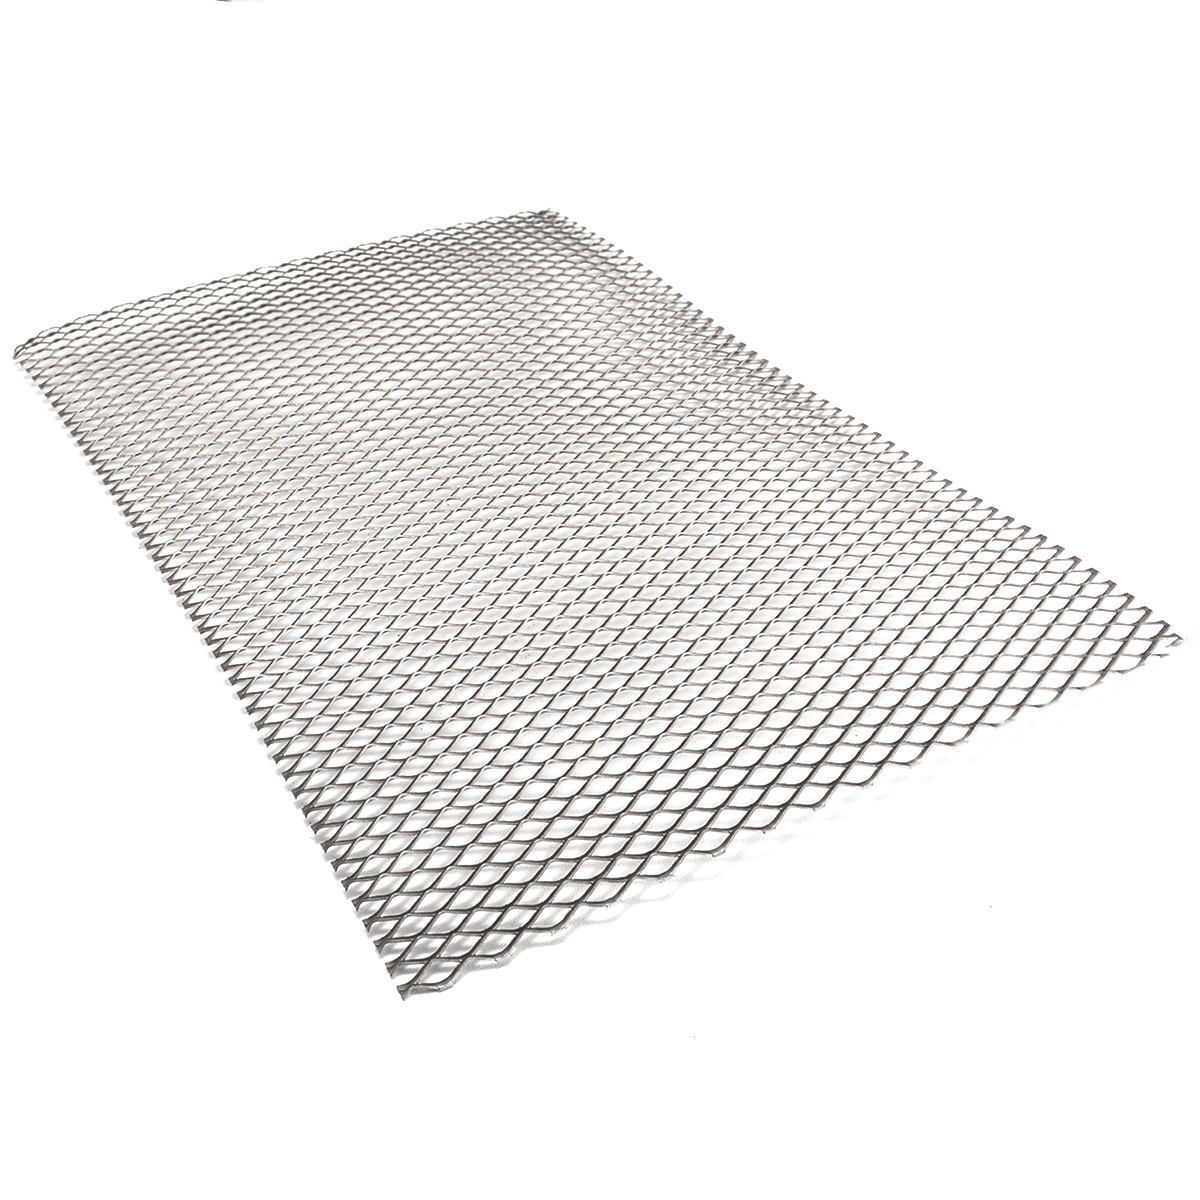 1pc New Titanium Mesh Durable Perforated Plate Expanded Mesh Sheet 200mmx300mmx0.5mm1pc New Titanium Mesh Durable Perforated Plate Expanded Mesh Sheet 200mmx300mmx0.5mm